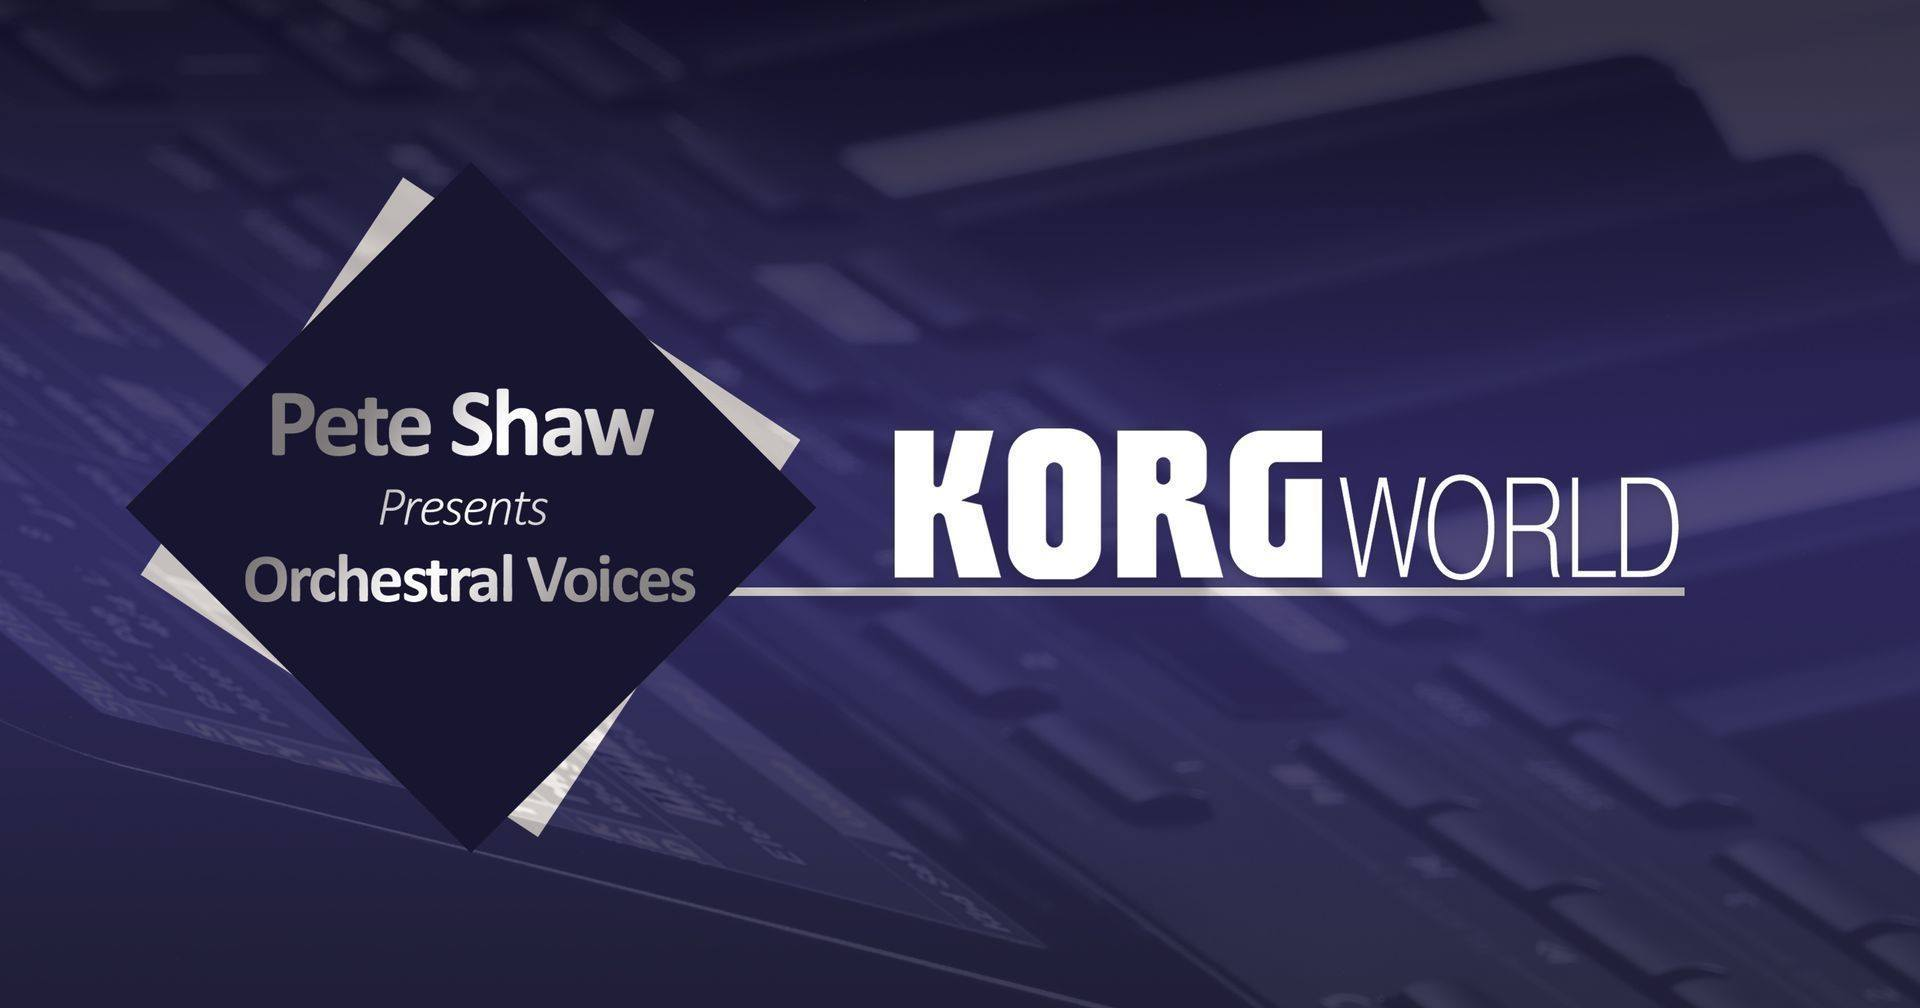 Join Pete Shaw LIVE on Thursday February 27th at 5pm as he takes you through a masterclass on the KORG Pa Series.